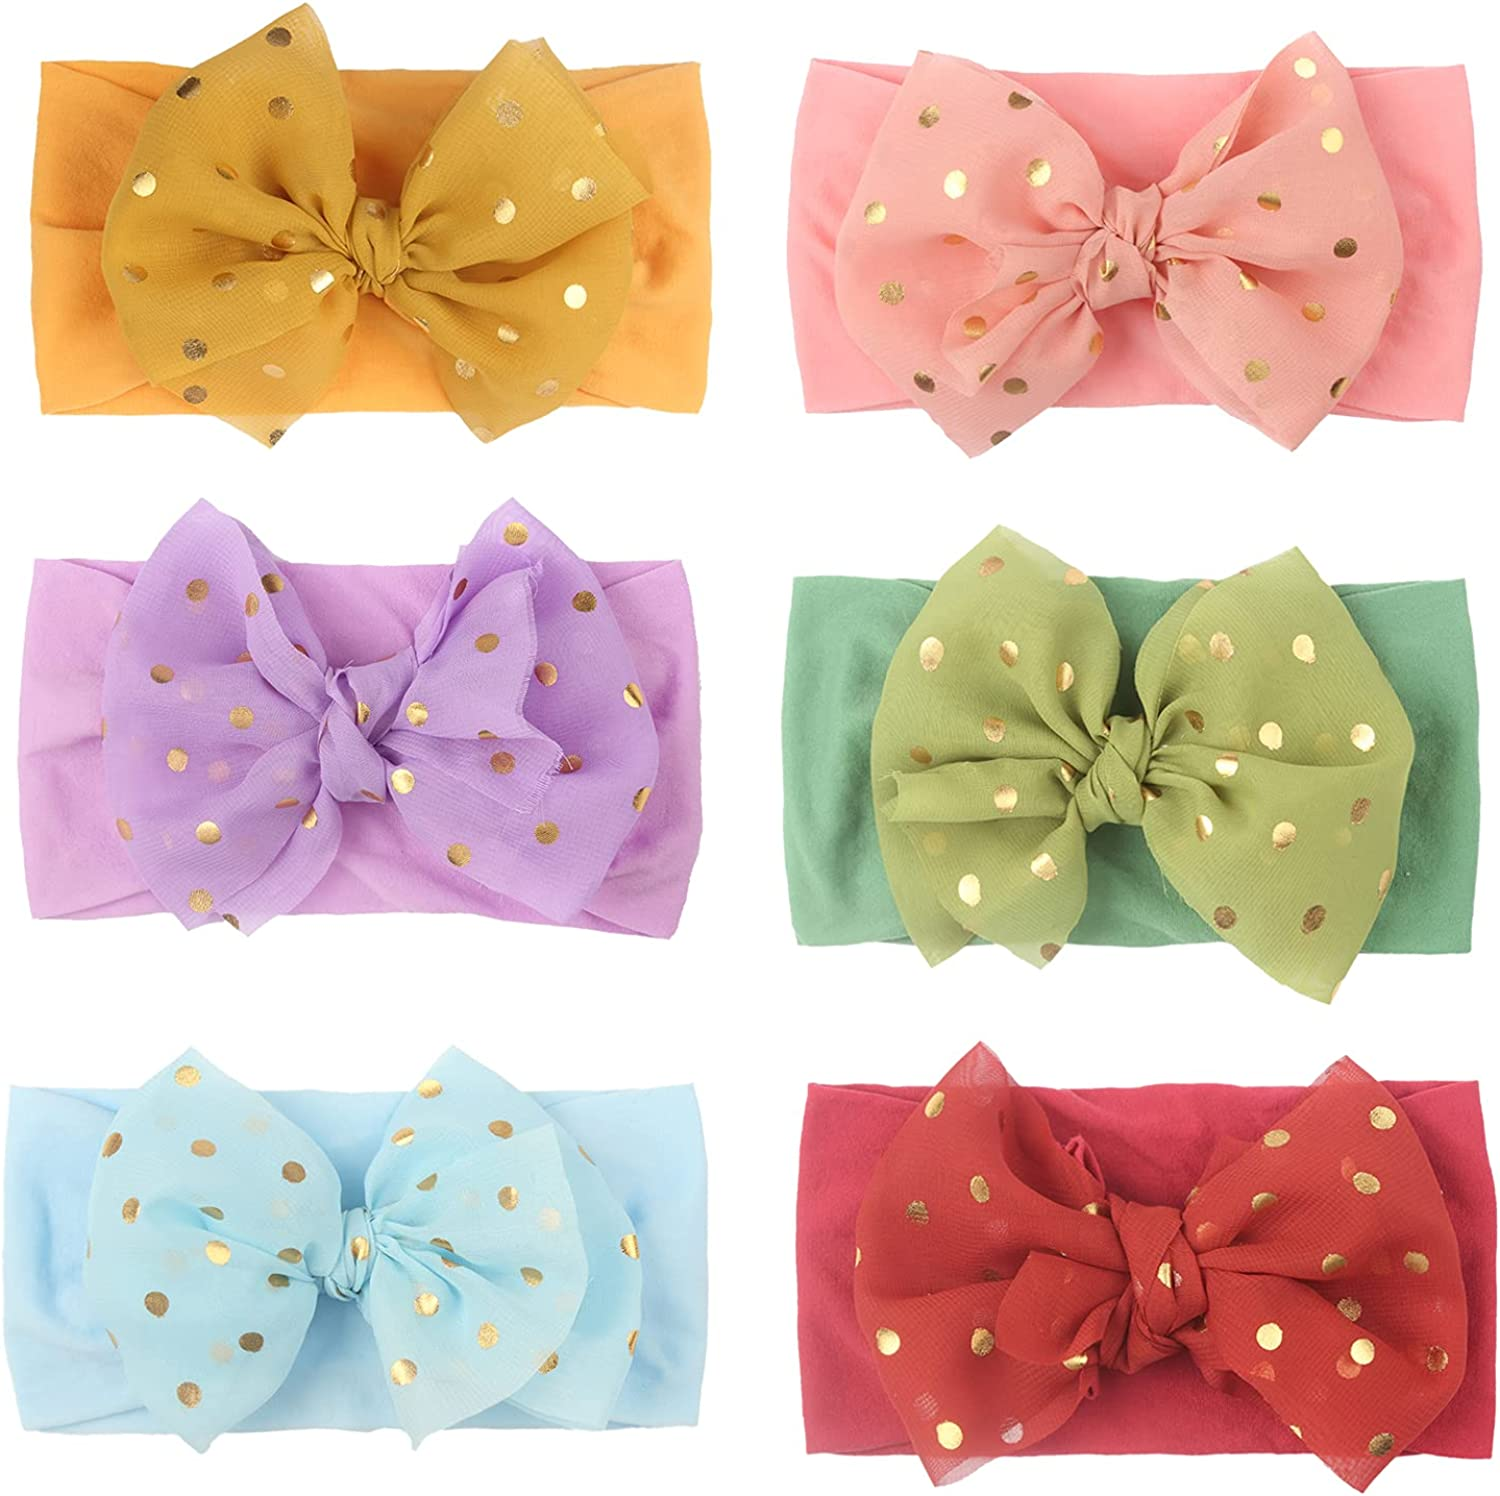 Yuyeran 6 Pack Baby Girl's Headbands with Chiffon Sequins Polka Dot Big Bow Head Bands Soft Headwraps Infant Caps